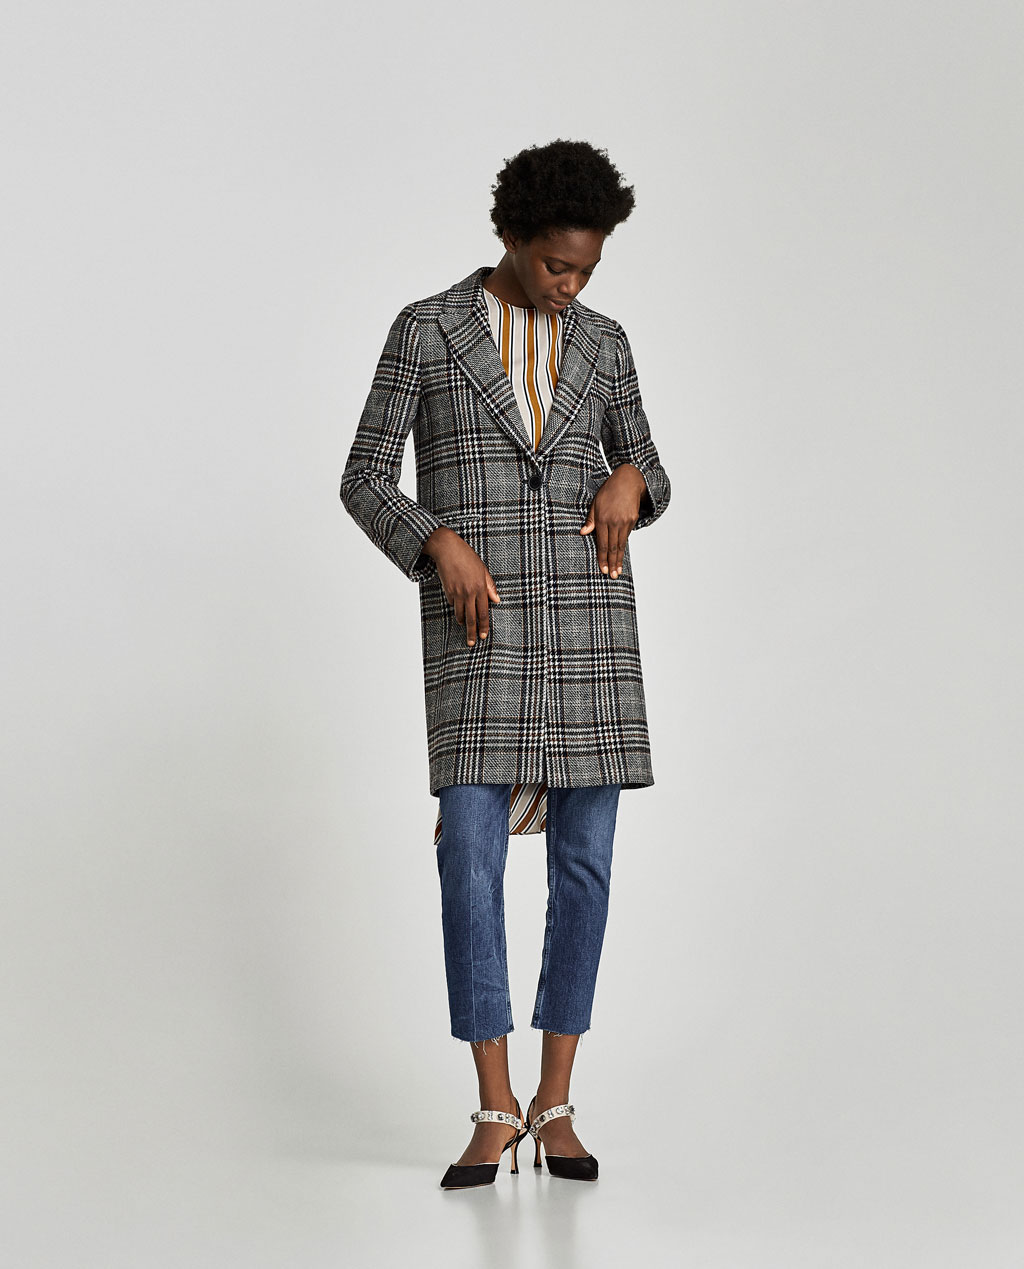 Zara Checked Coat $169